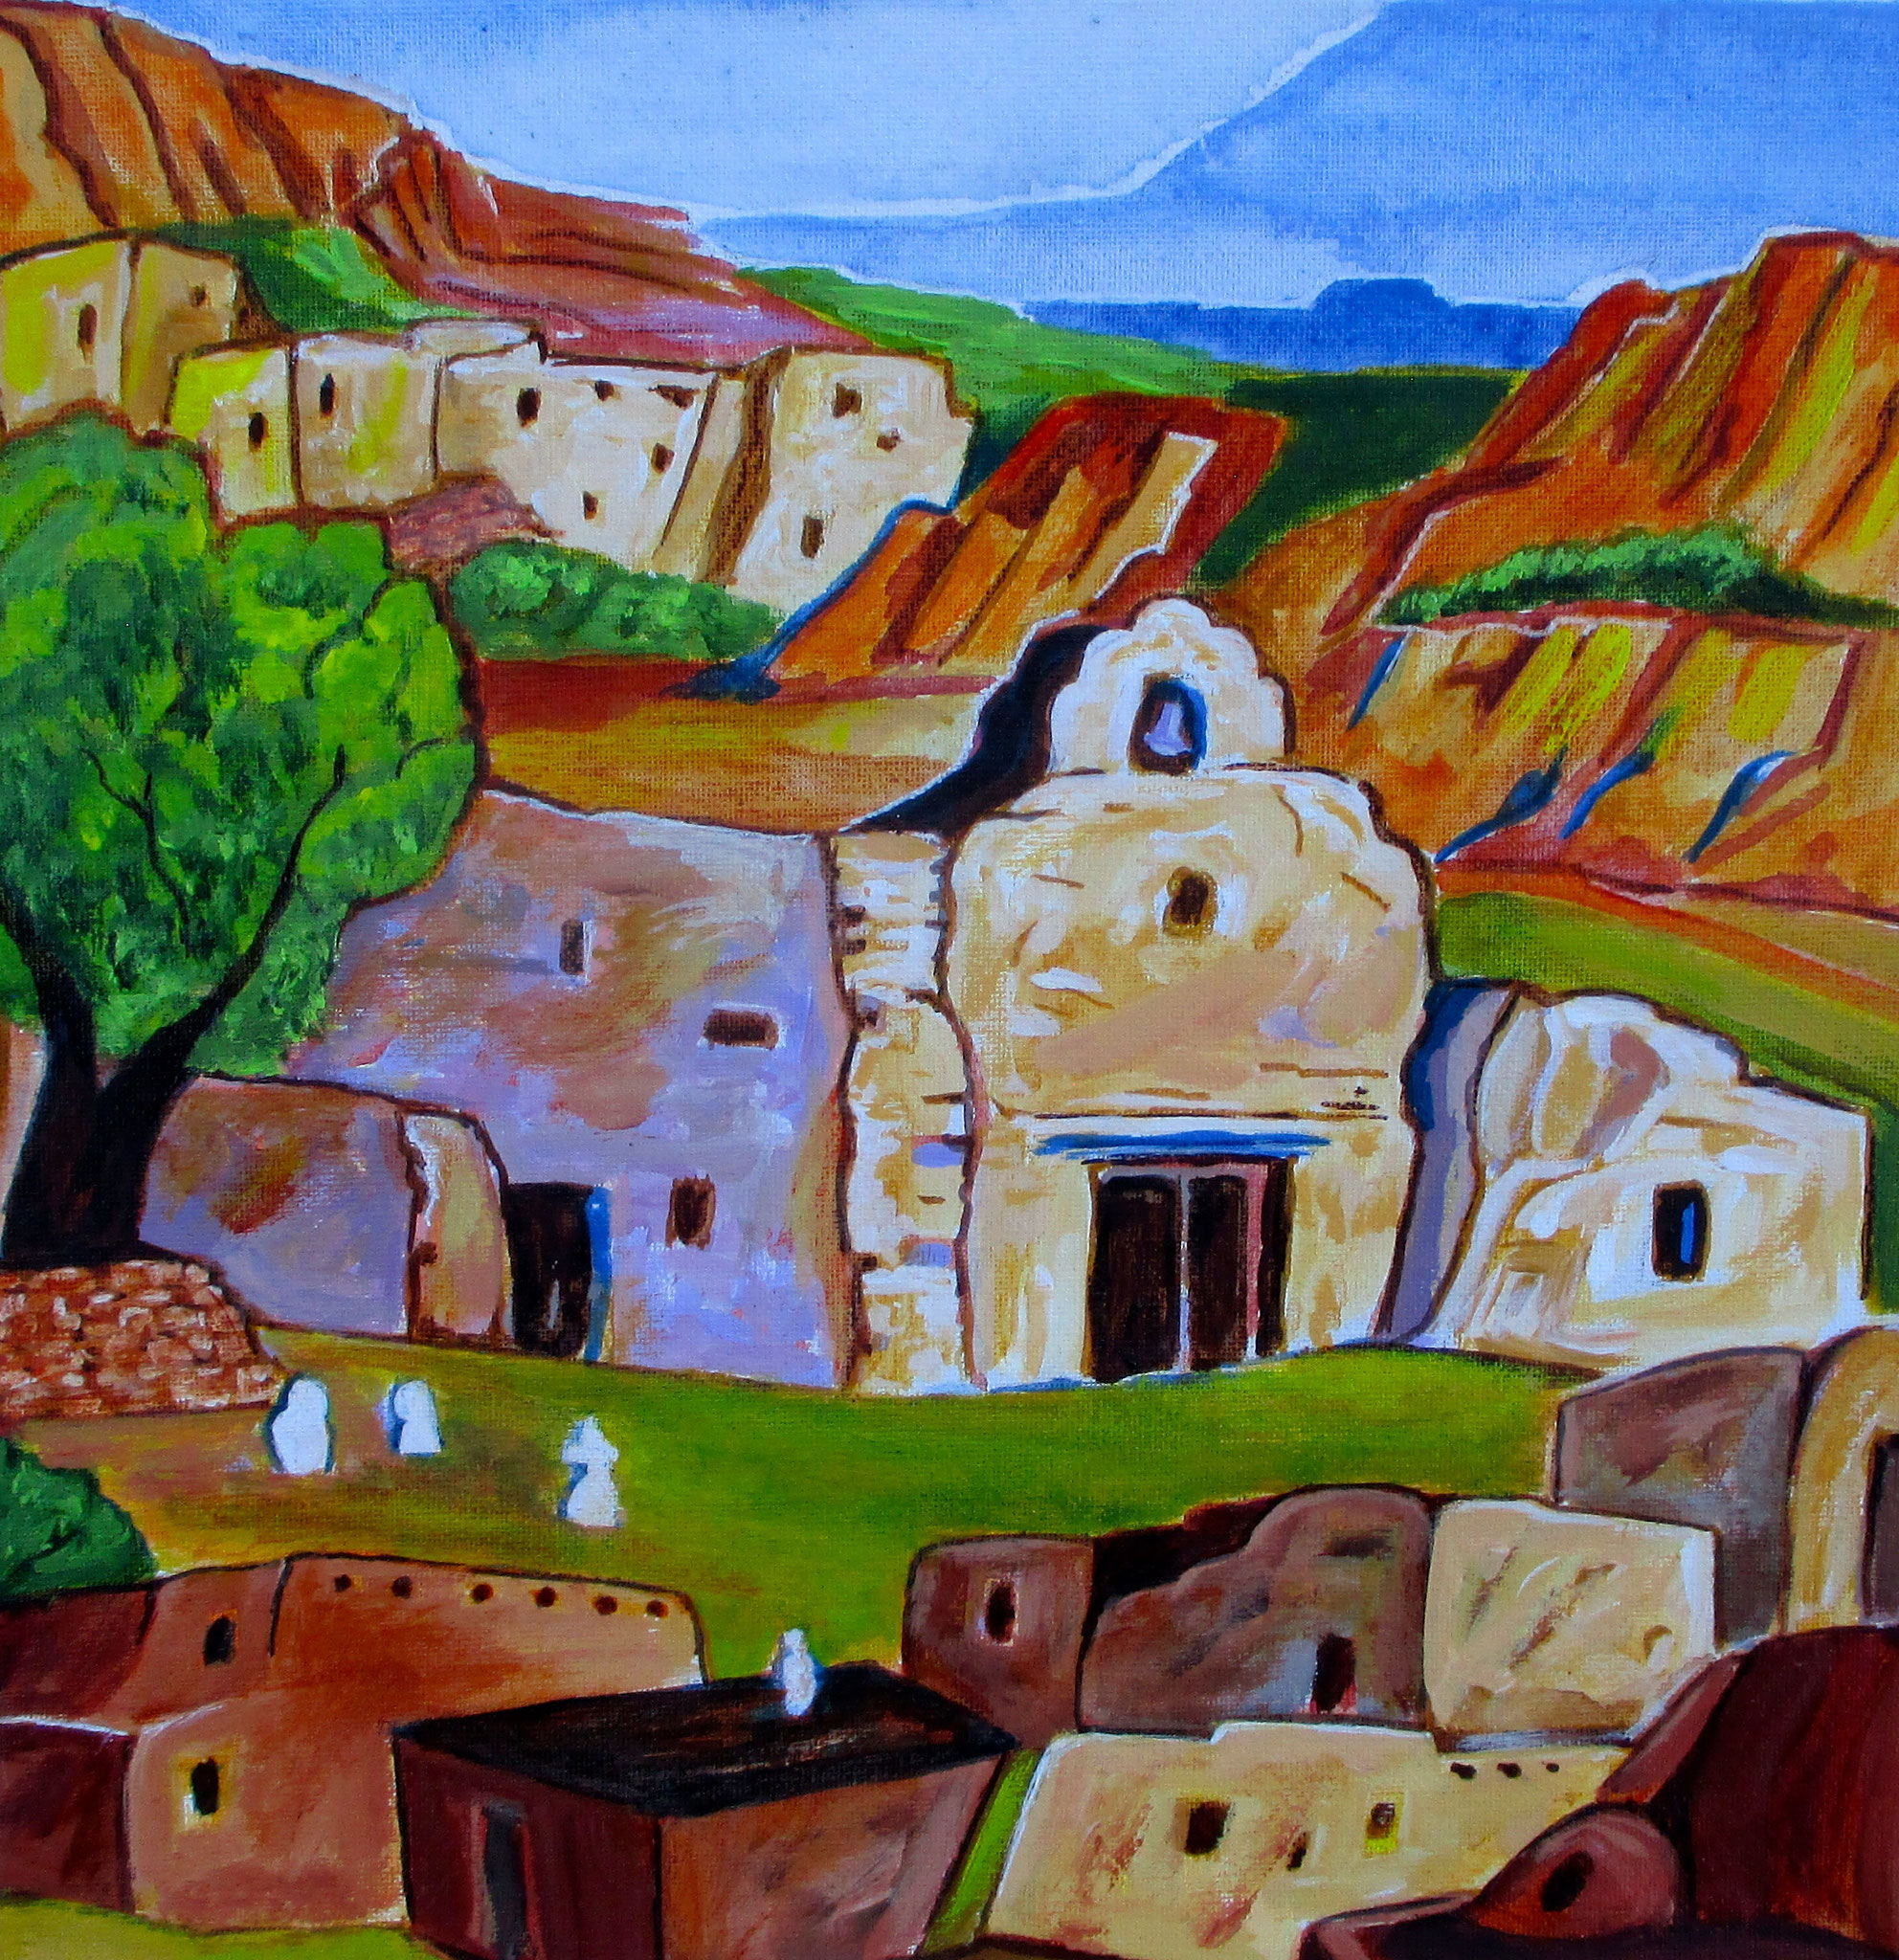 Pueblo Village I, acrylic on canvas, 12 x 12, SOLD